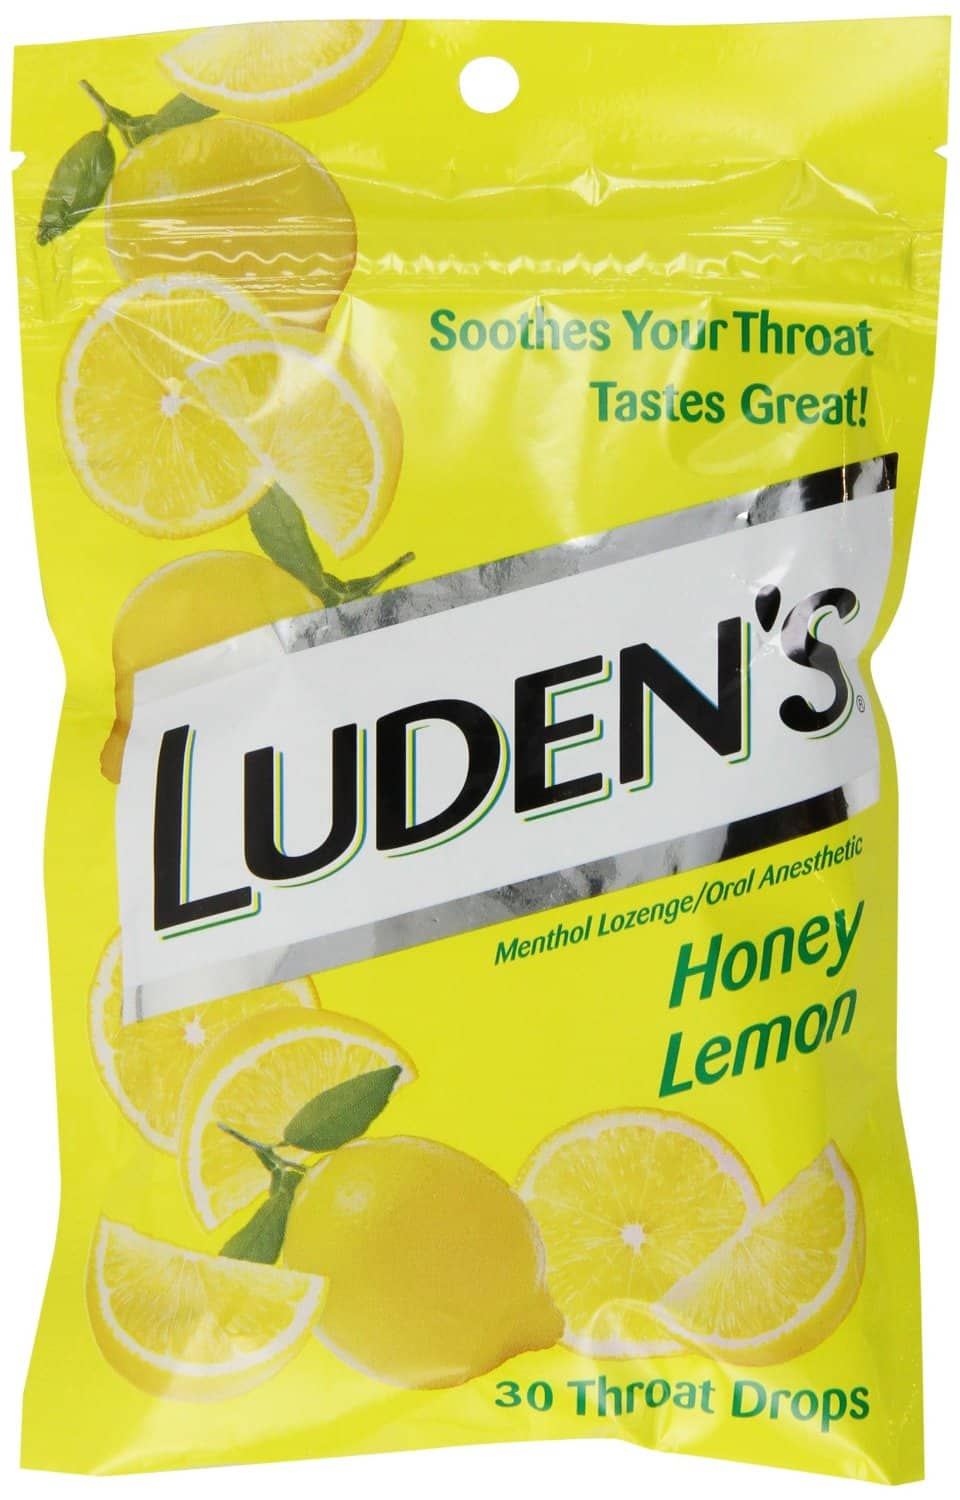 Luden's Great Tasting Throat Drops, Honey Lemon, 30-count 1.42 with Subscribe and Save